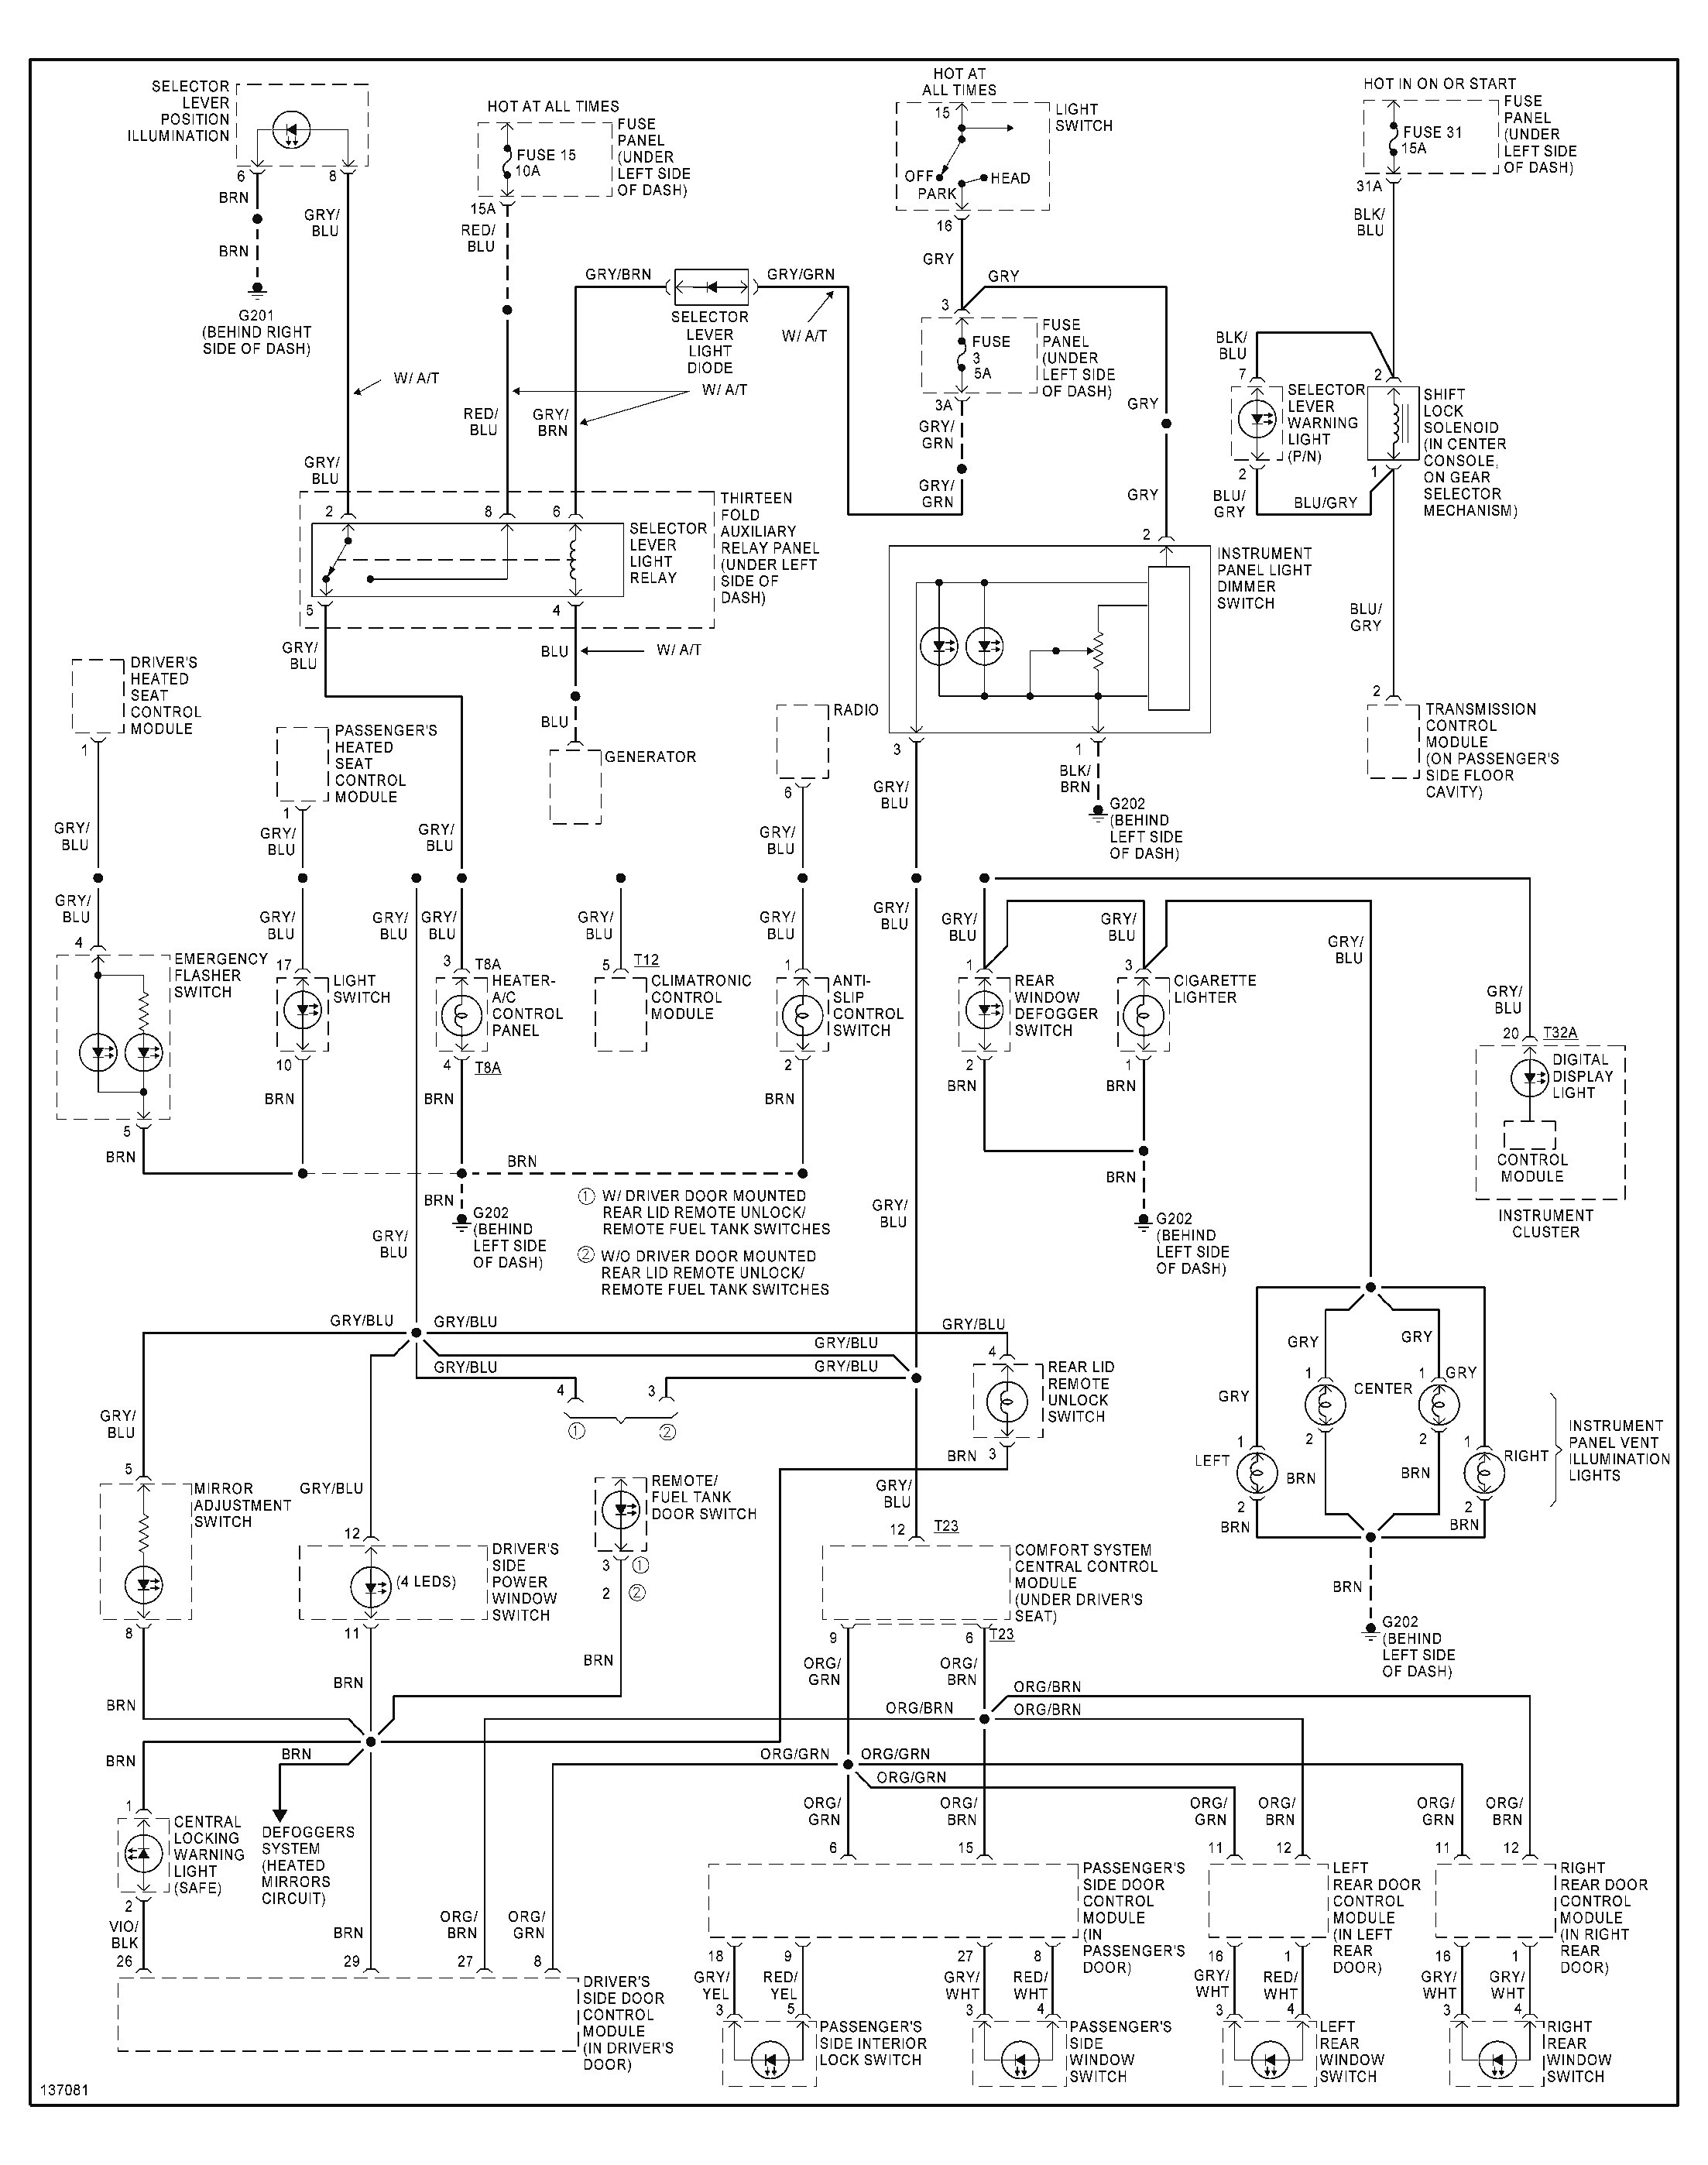 Sony Cdx Gt310 Wiring Diagram from mainetreasurechest.com